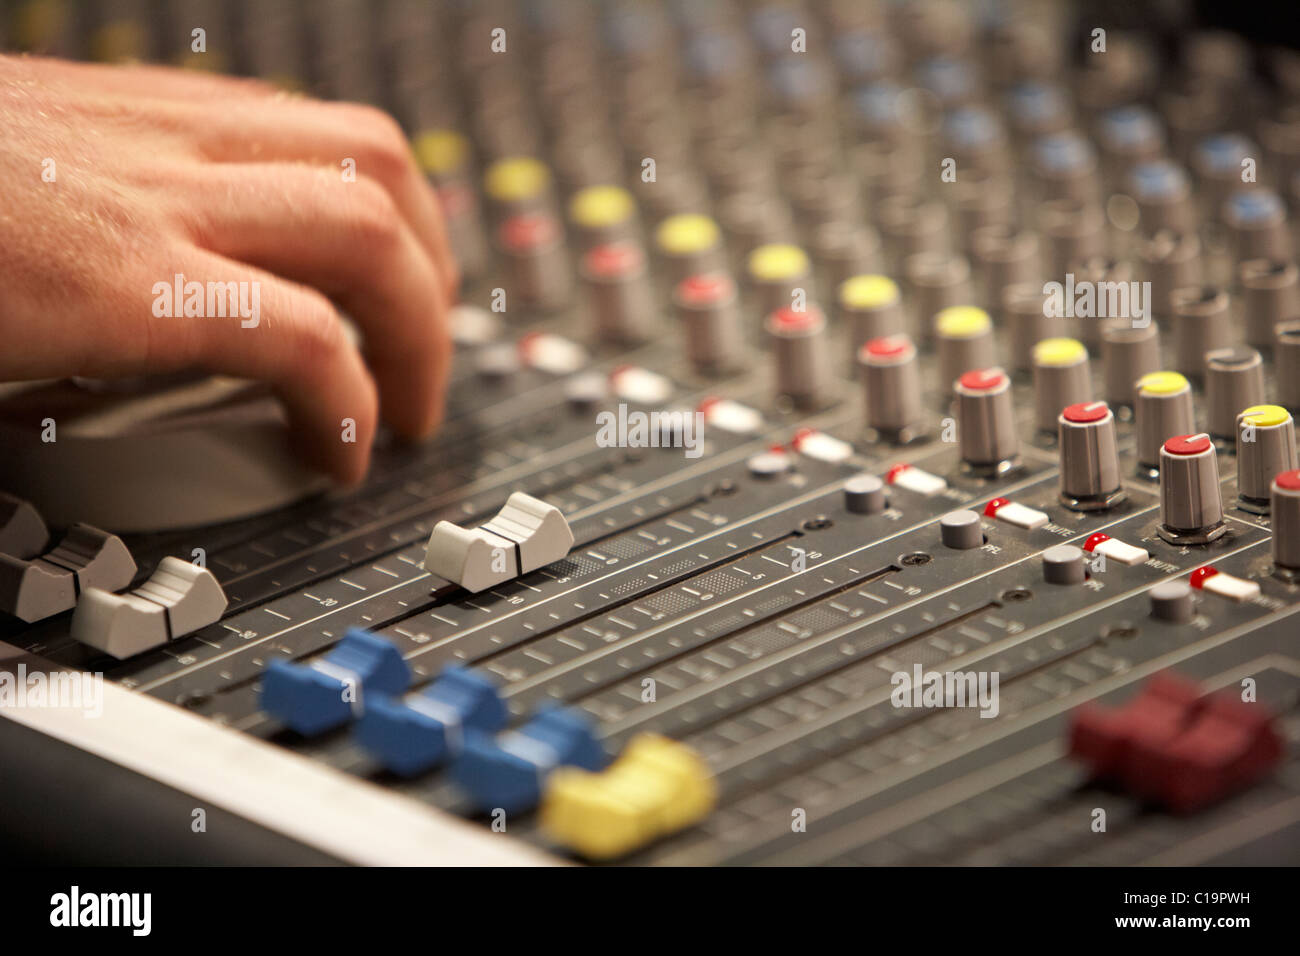 sliders and sound engineers hand on audio mixing desk in a theatre concert hall - Stock Image